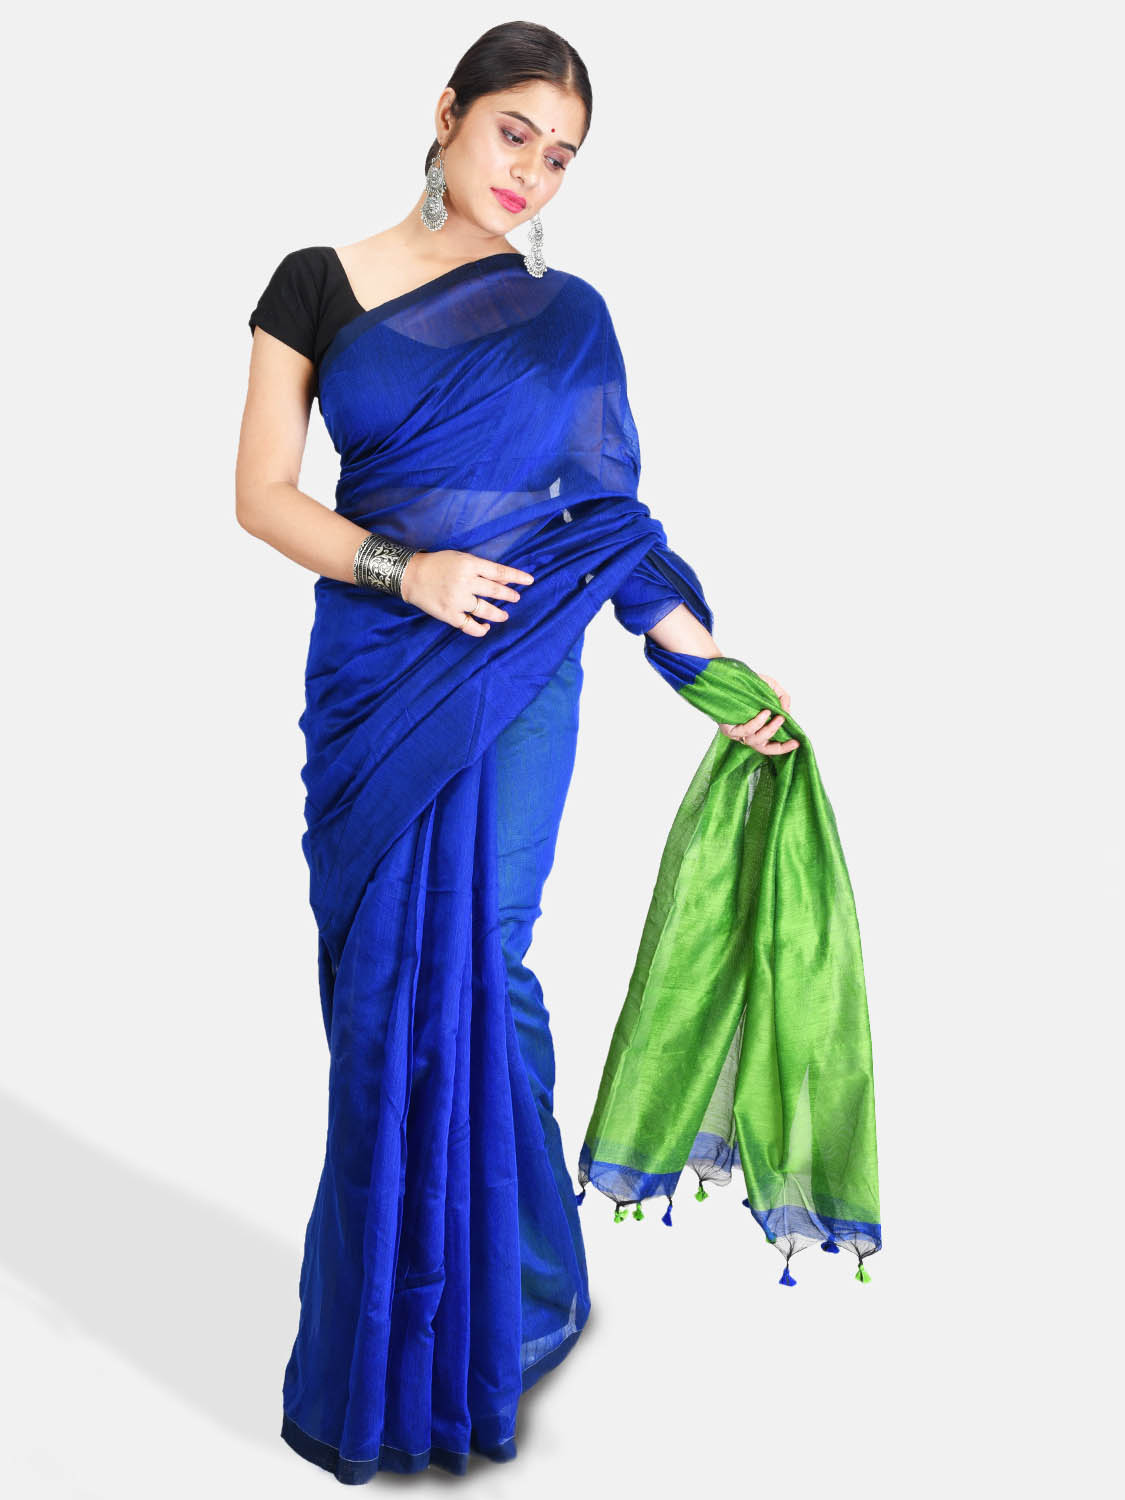 DESH BIDESH Women`s Cotton Silk and Bengal Soft Khadi Cotton Mix Ghicha Handloom Saree With Blouse Piece (Blue Green)